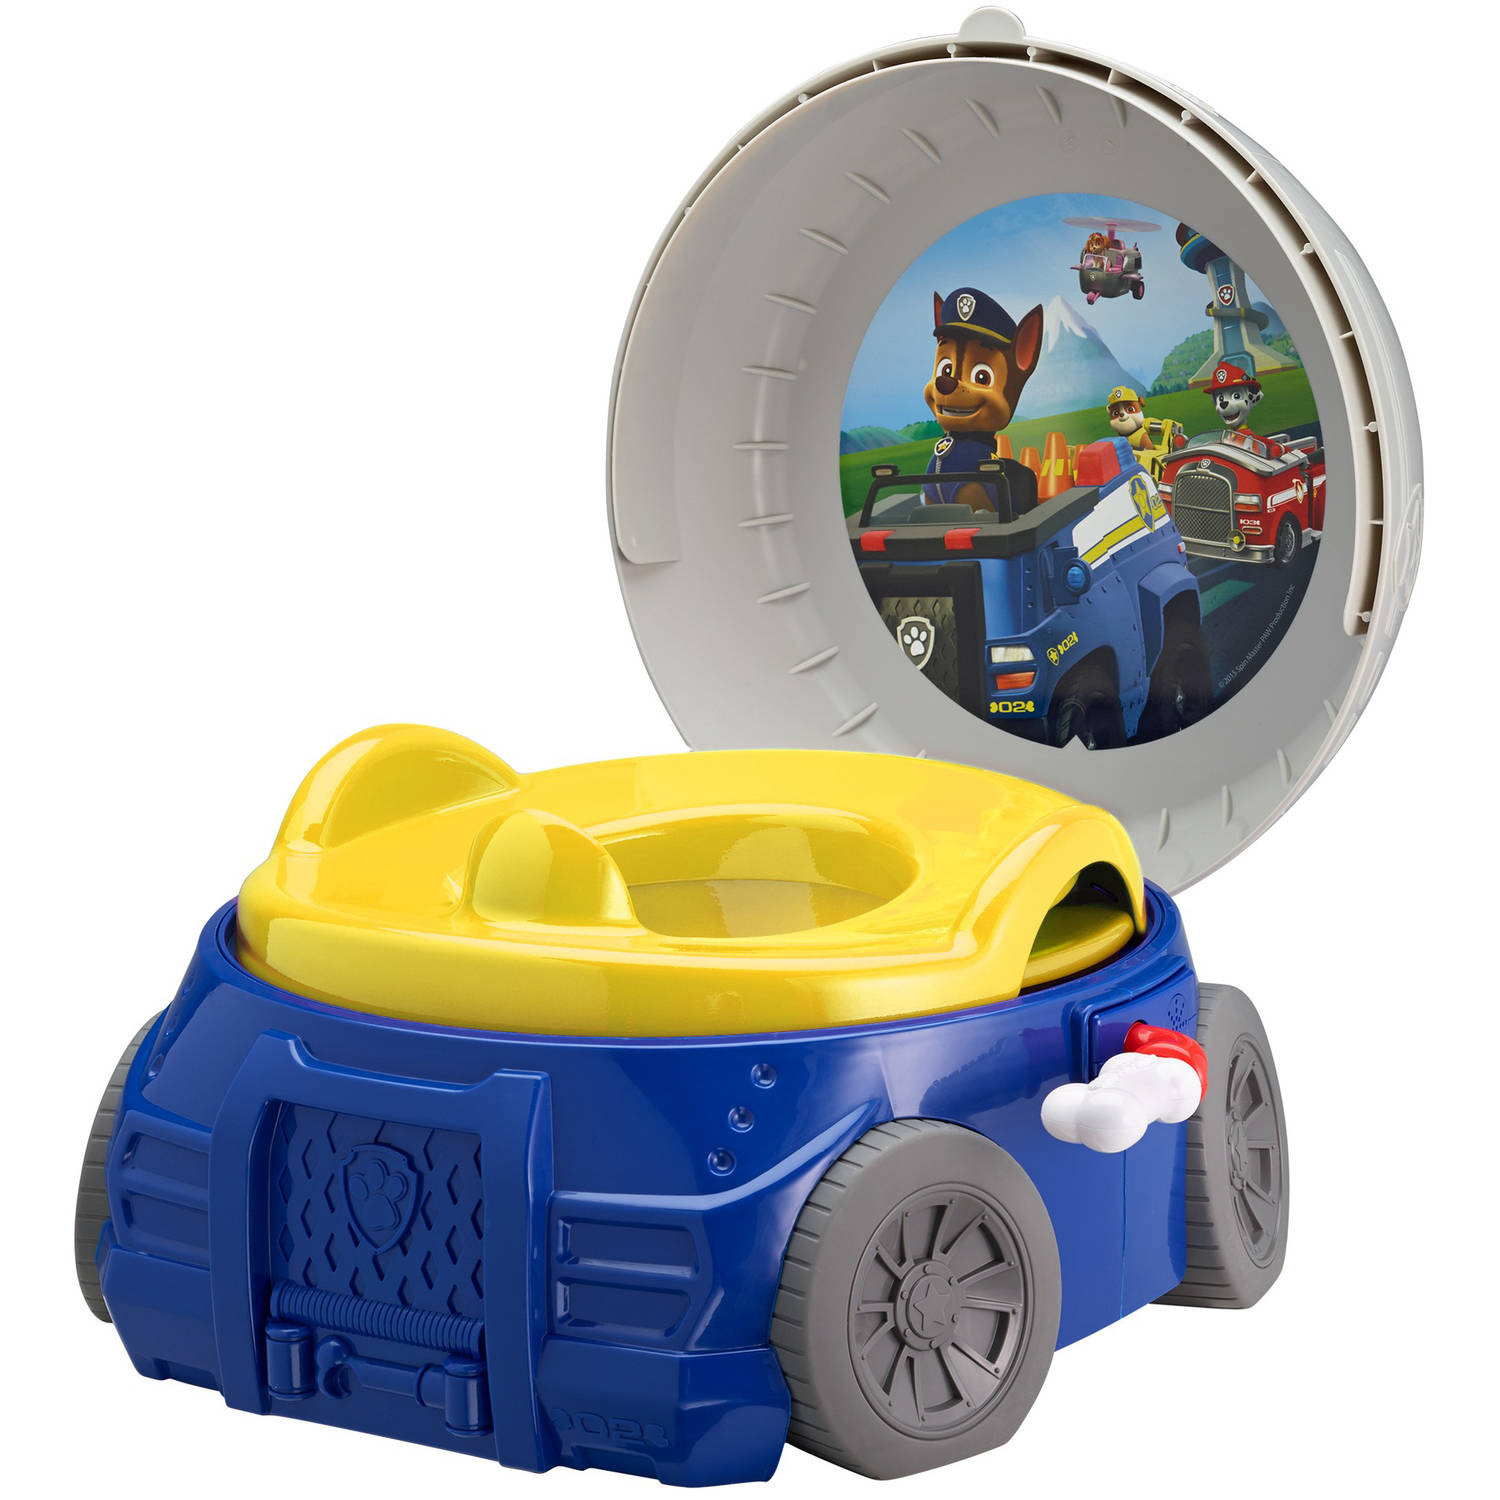 The First Years Nickelodeon Paw Patrol 3-in-1 Potty System